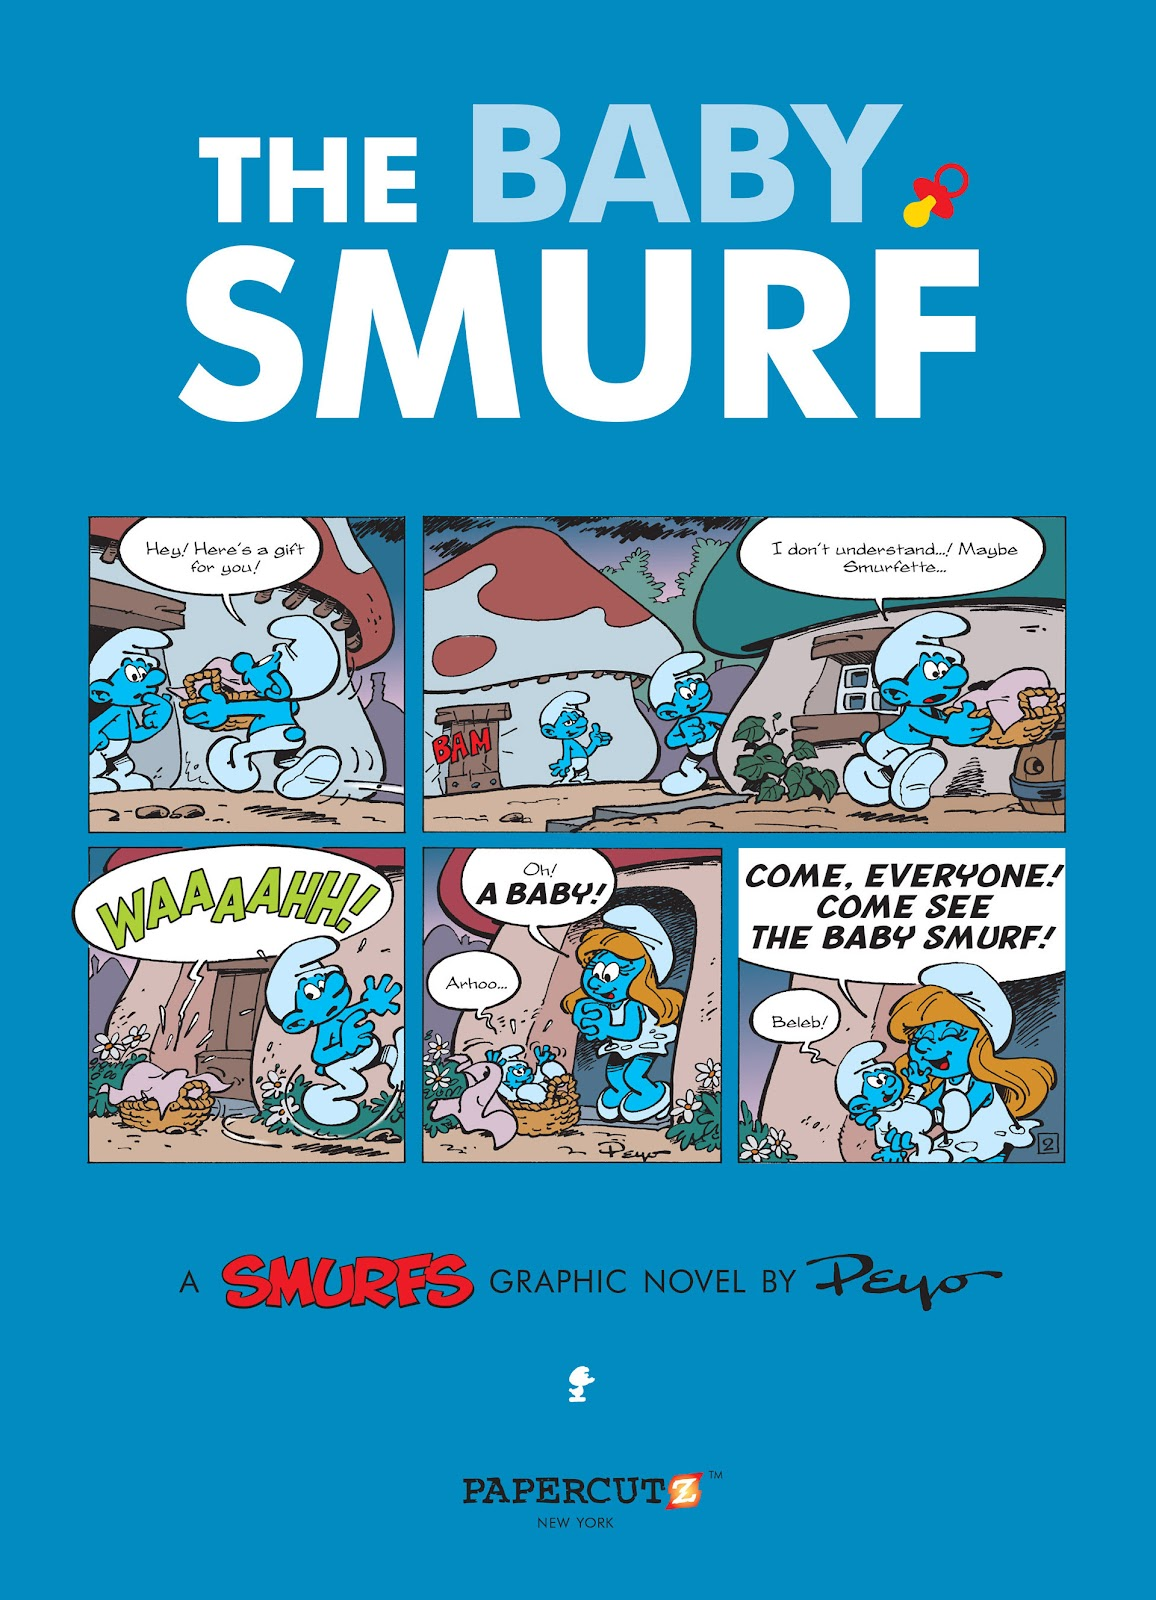 Read online The Smurfs comic -  Issue #14 - 4